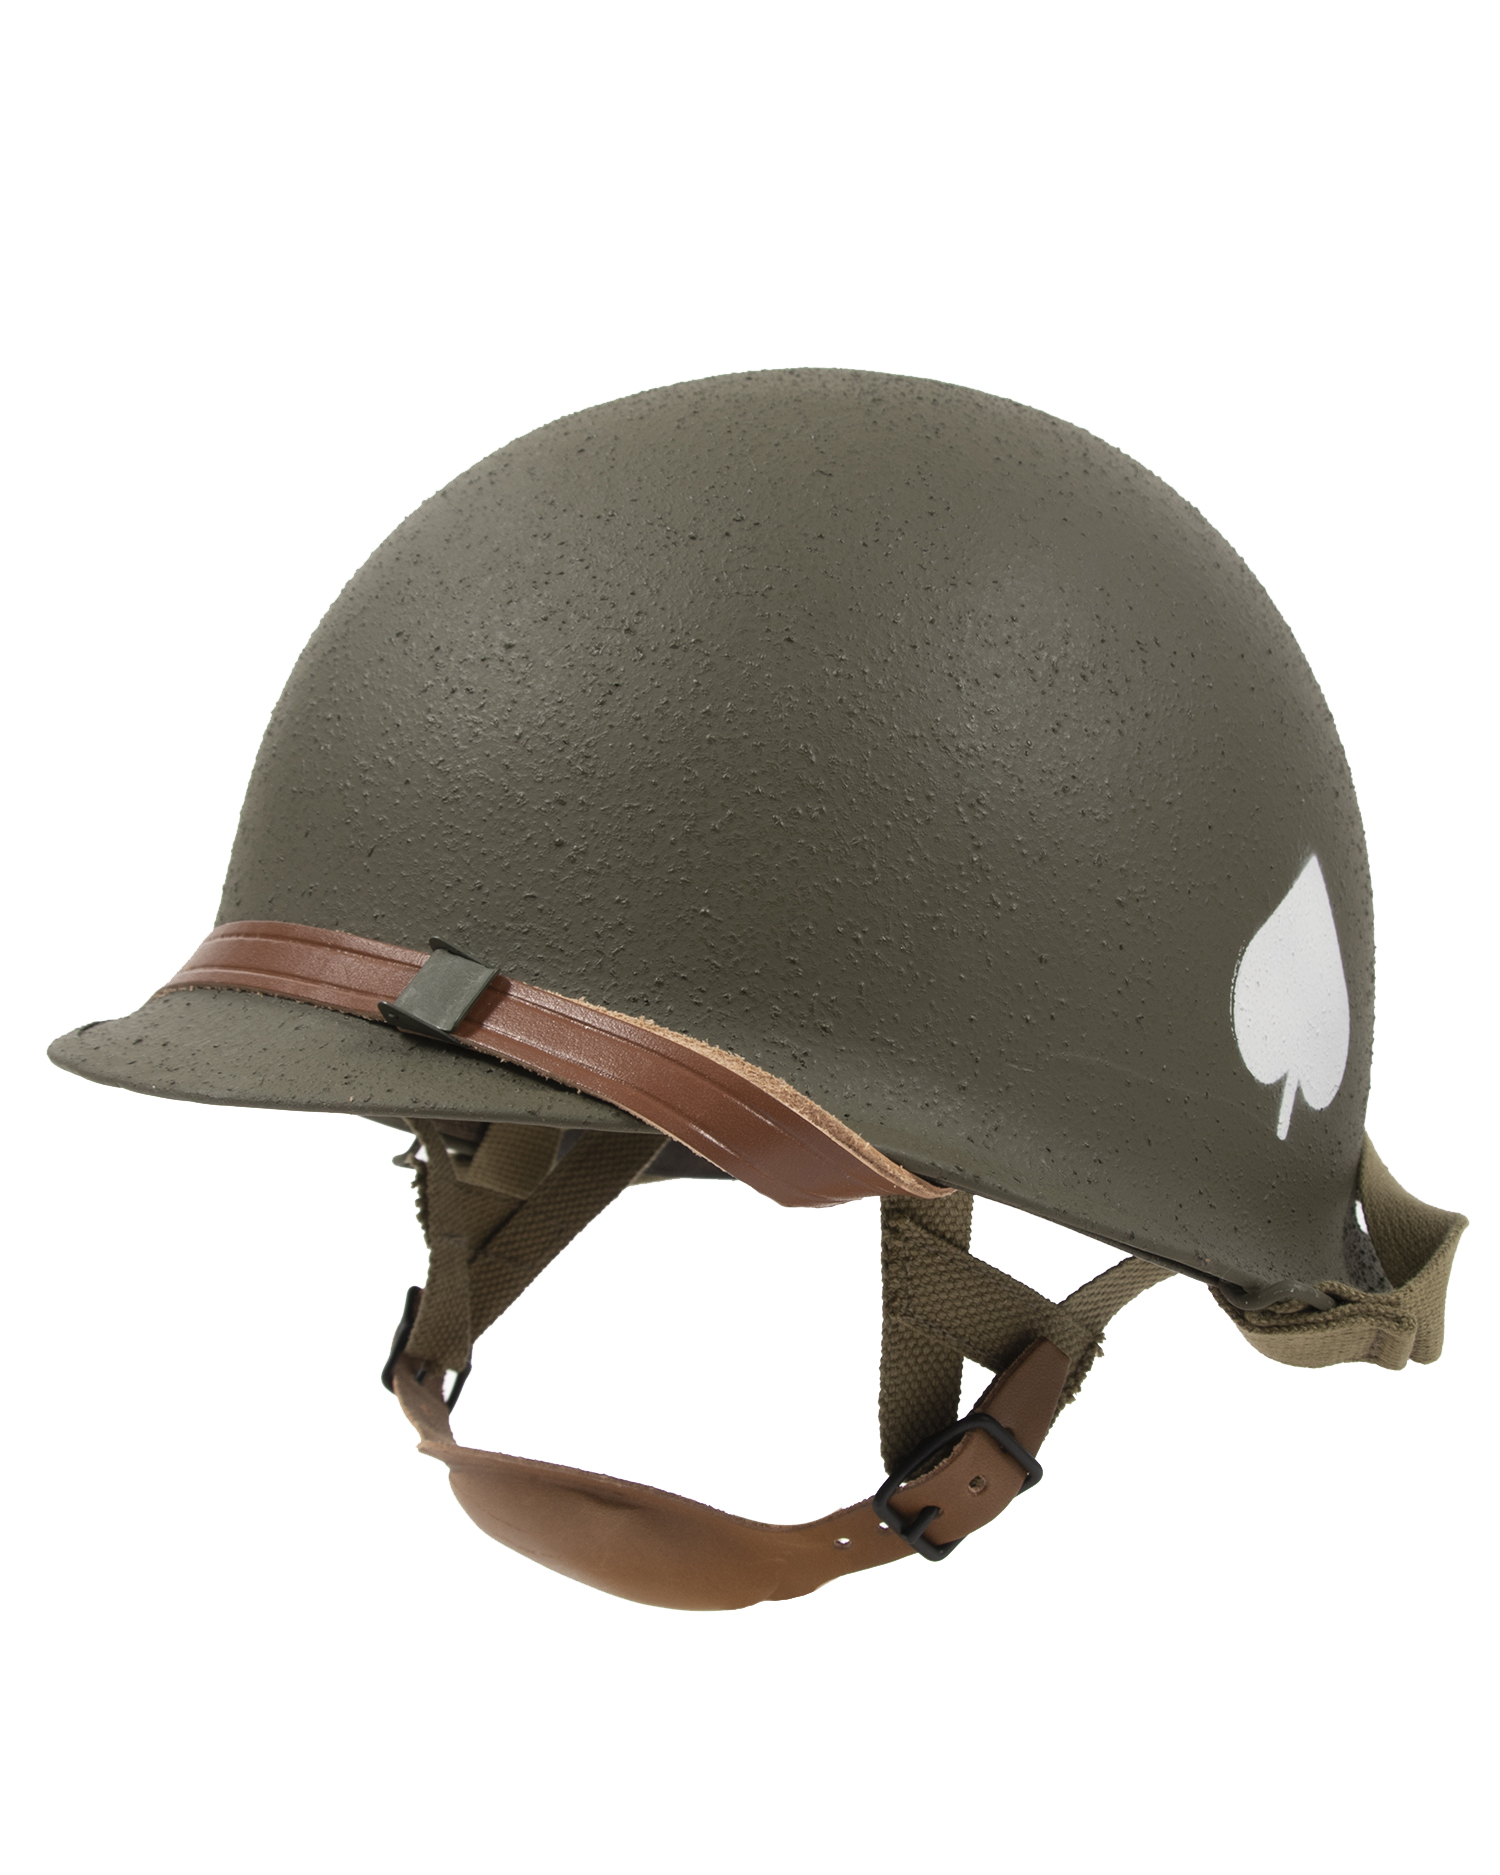 WWII Parts 506th Paratrooper Helmet